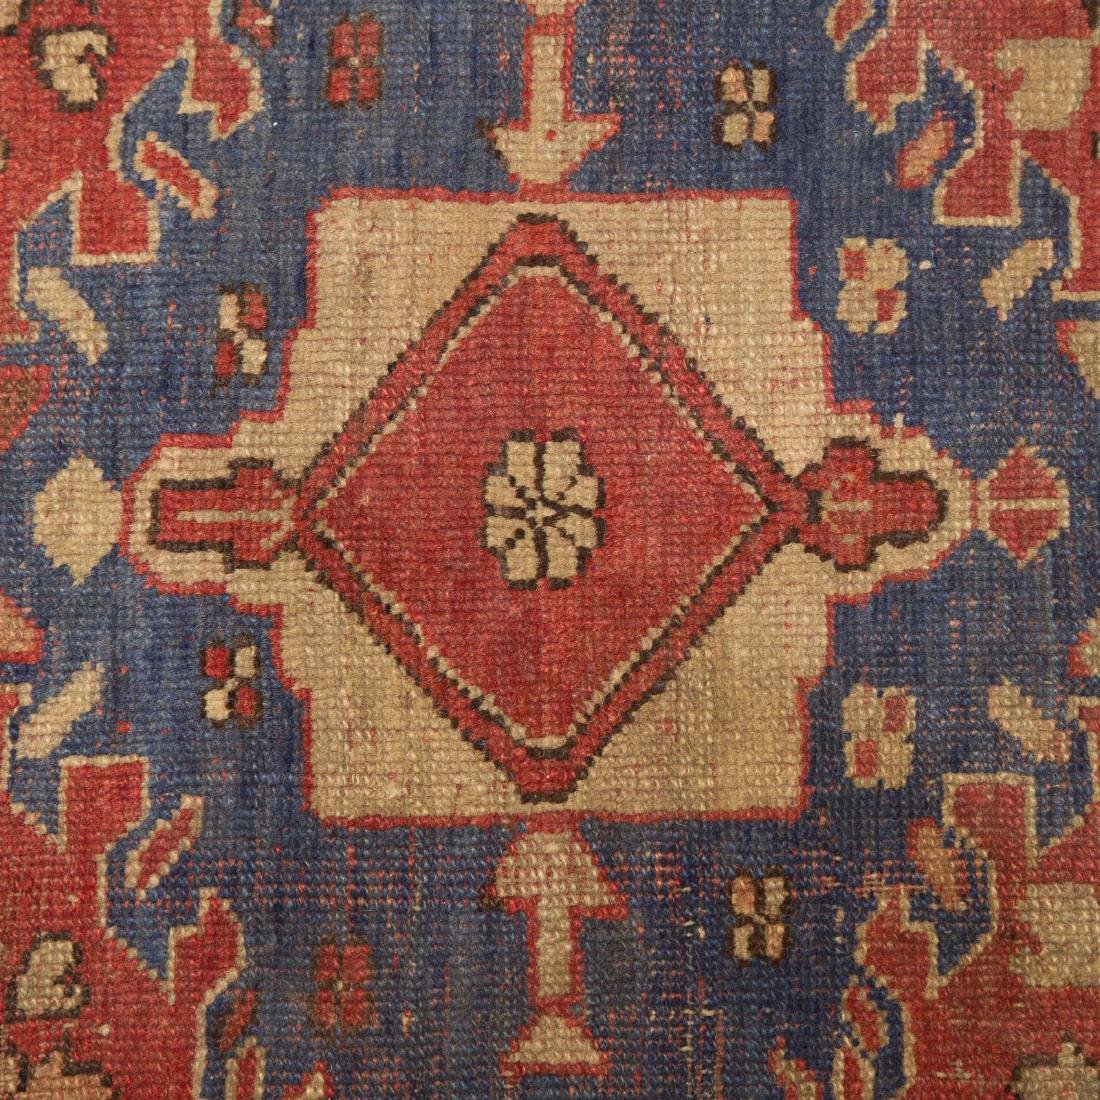 Antique Oushak rug, approx. 3.11 x 6.3 - 4